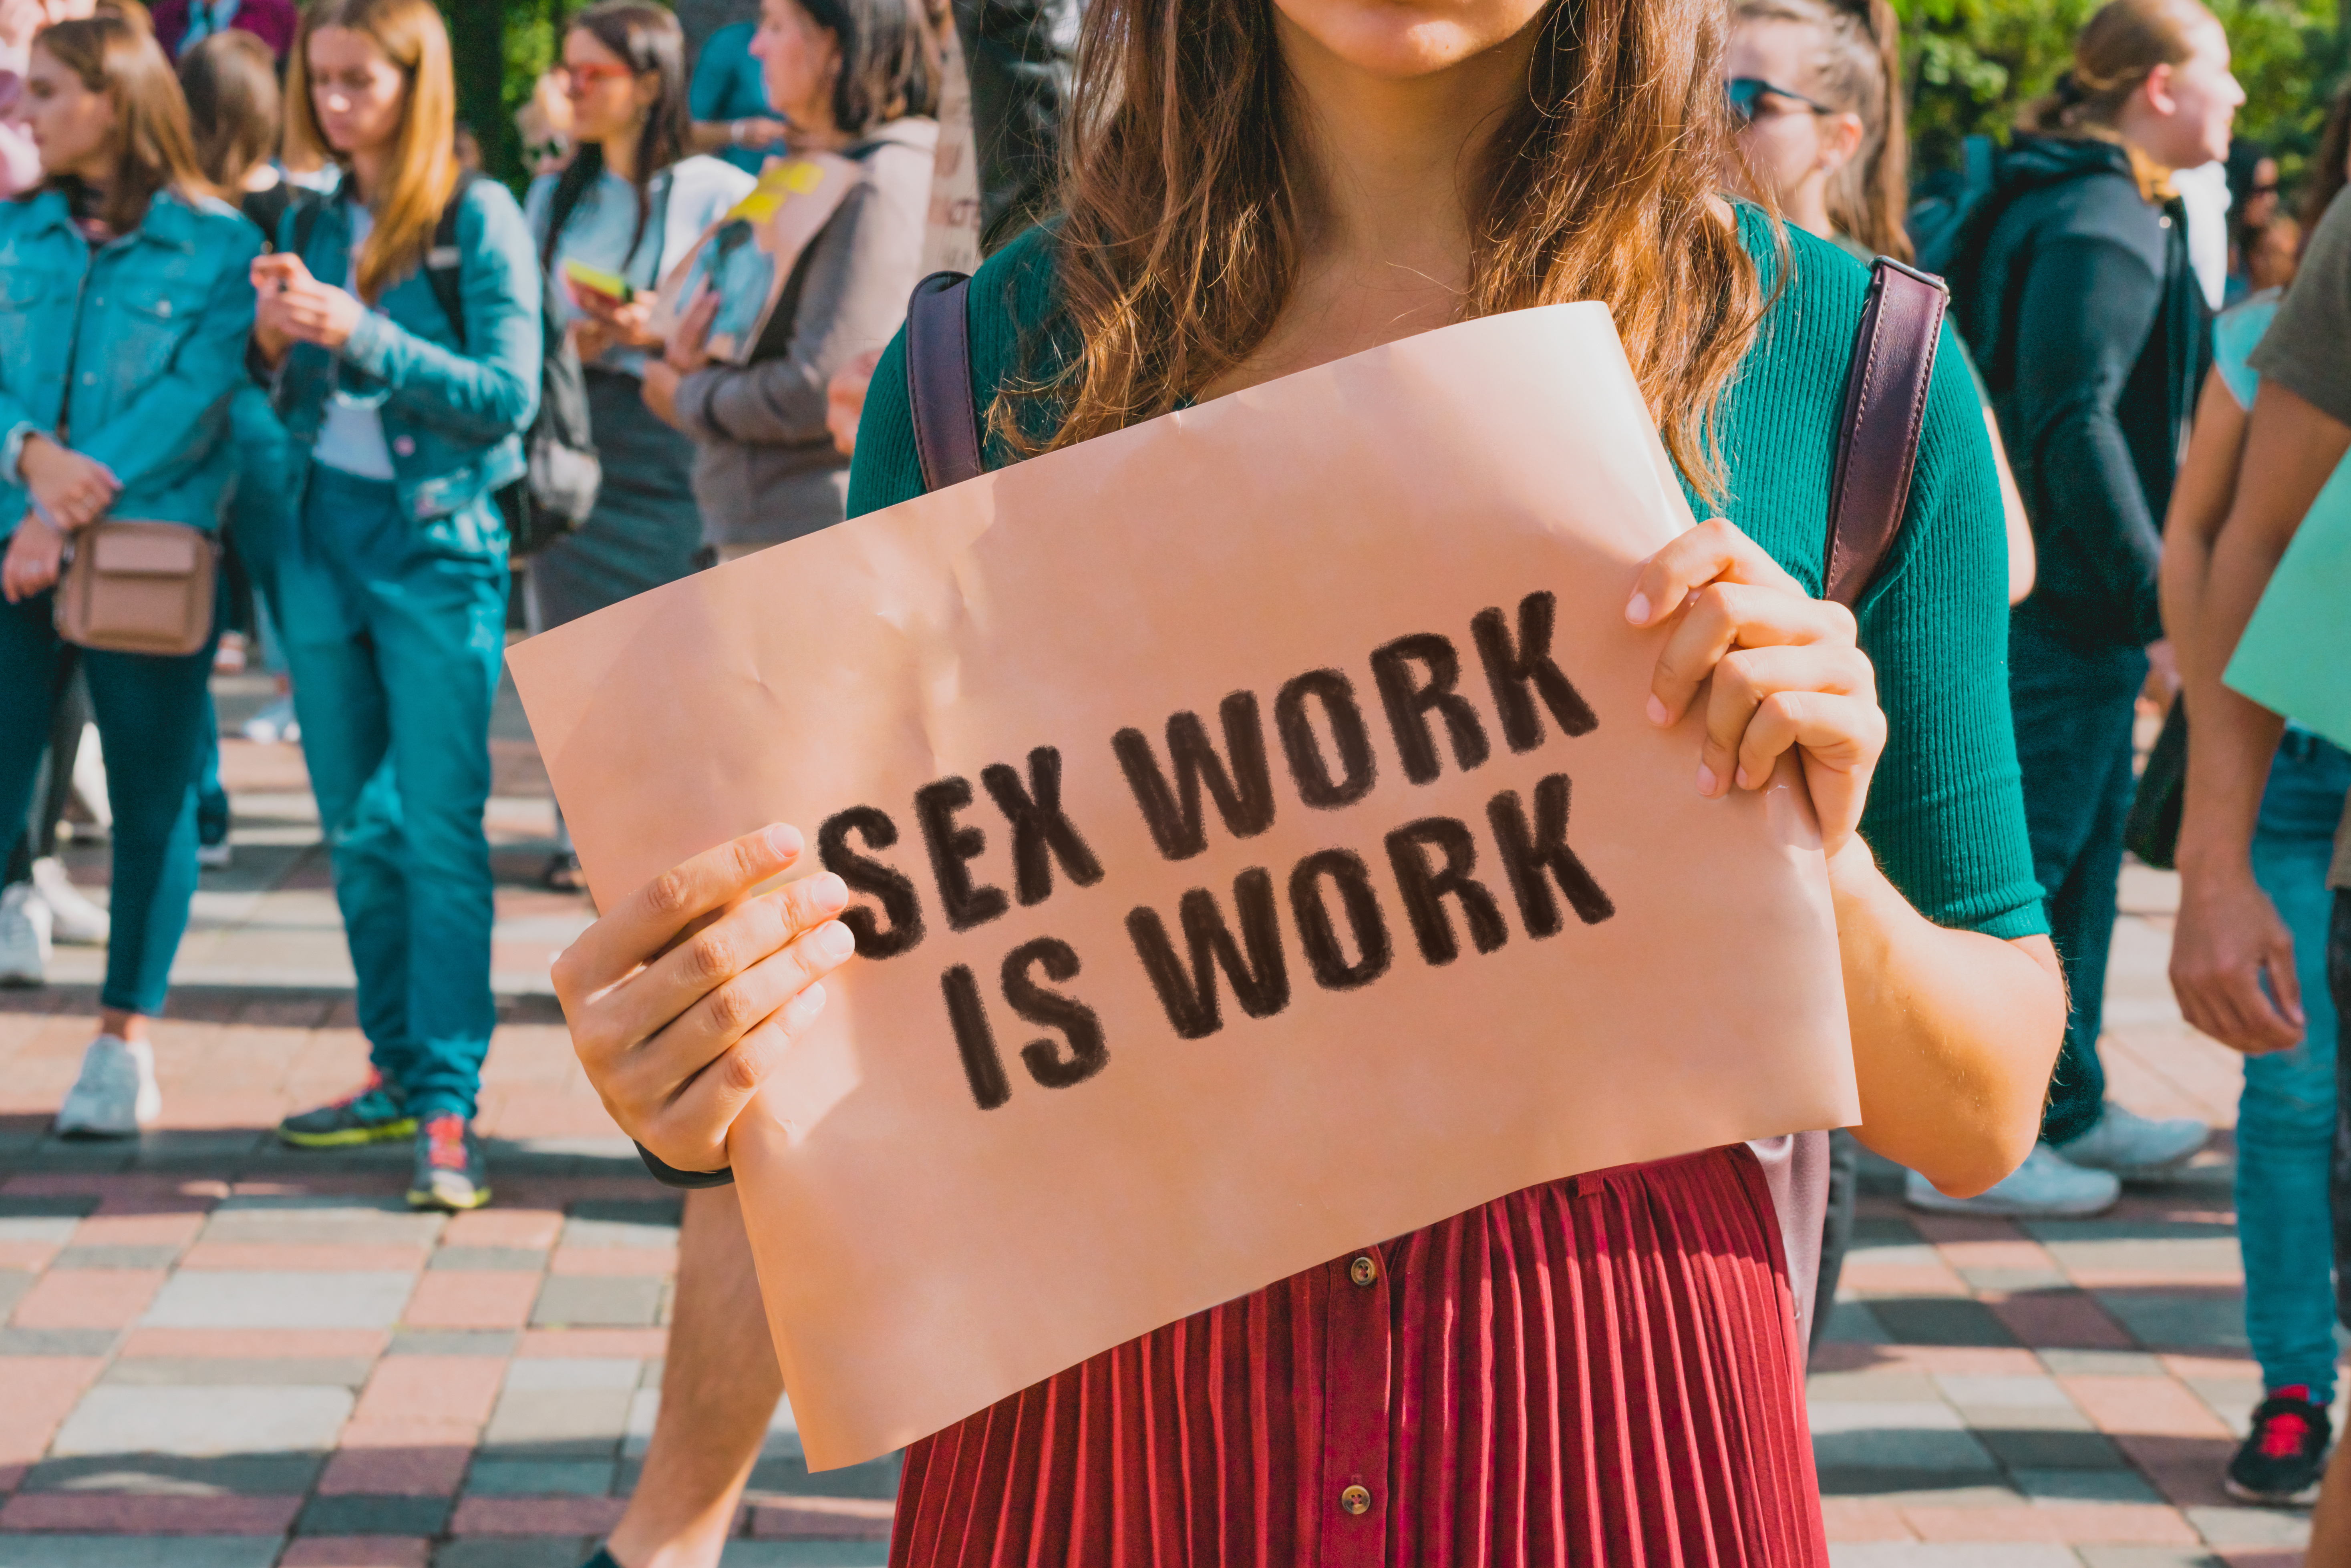 WHEN CAN I RETURN TO WORK? | AUSTRALIAN SEX WORKERS COVID-19